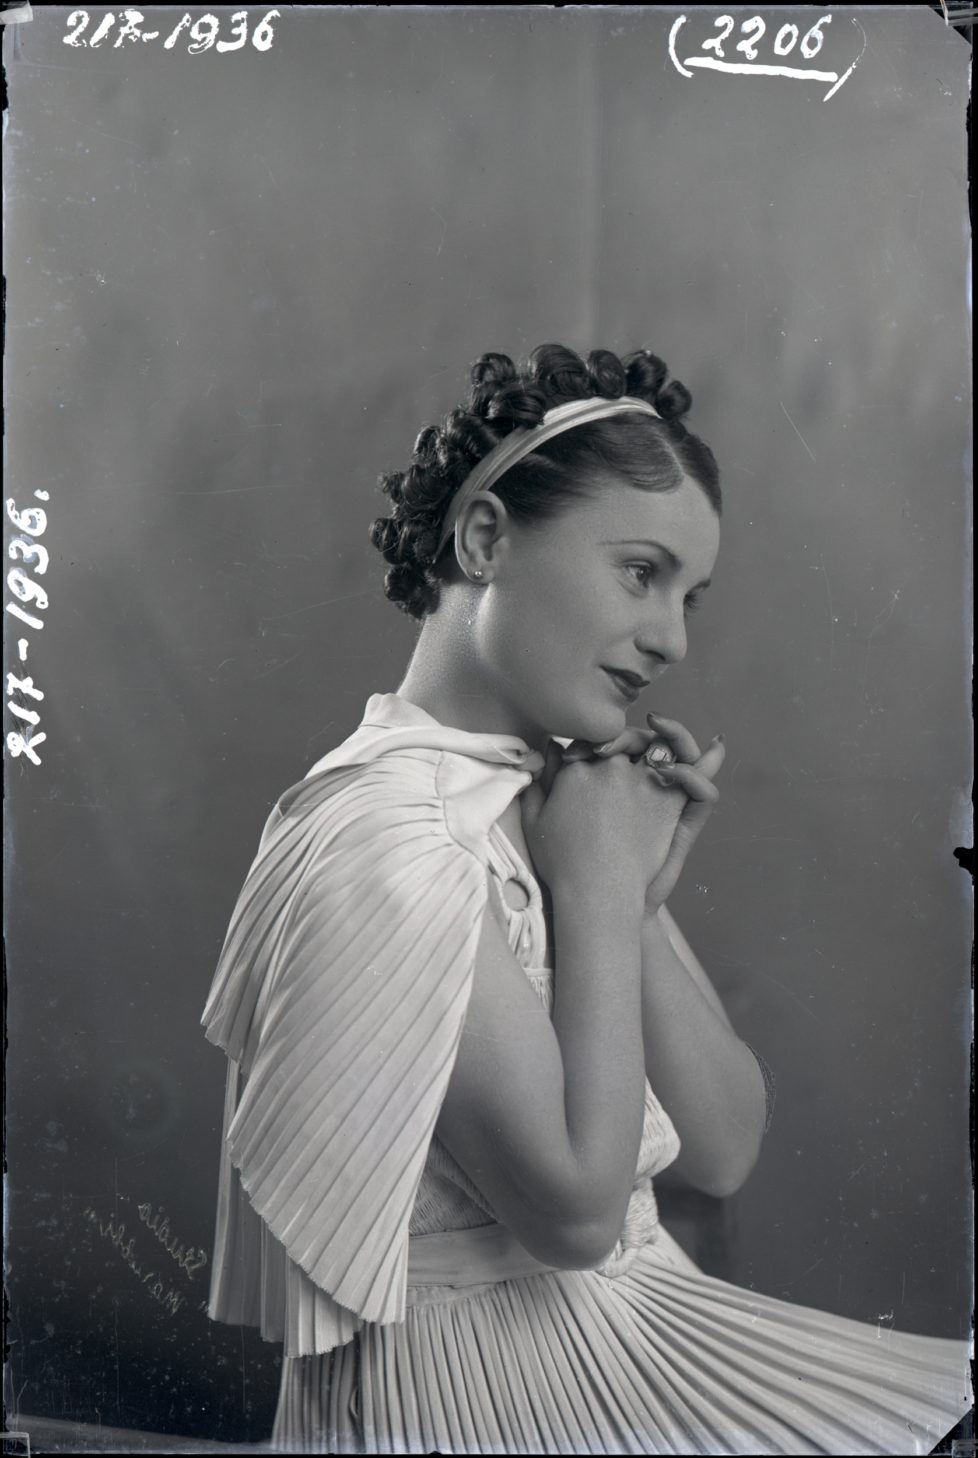 Tefta Tashko, 1936 C Geg+½ Marubi Courtesy Marubi National Museum of Photography, Shkod+½r.